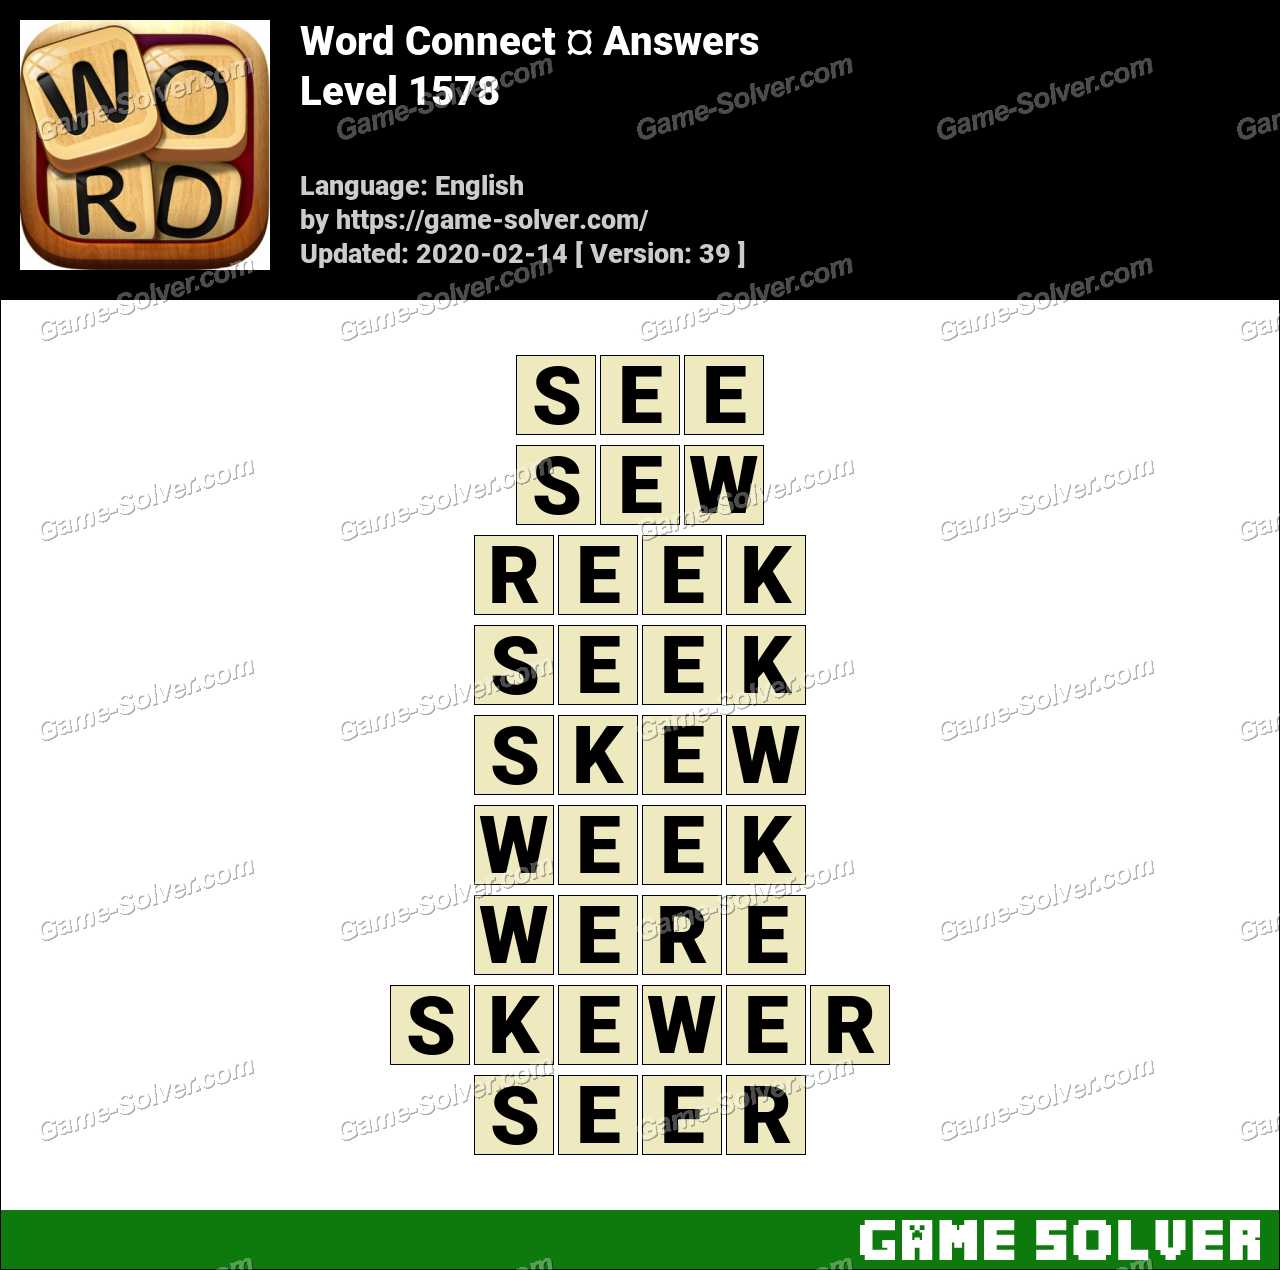 Word Connect Level 1578 Answers